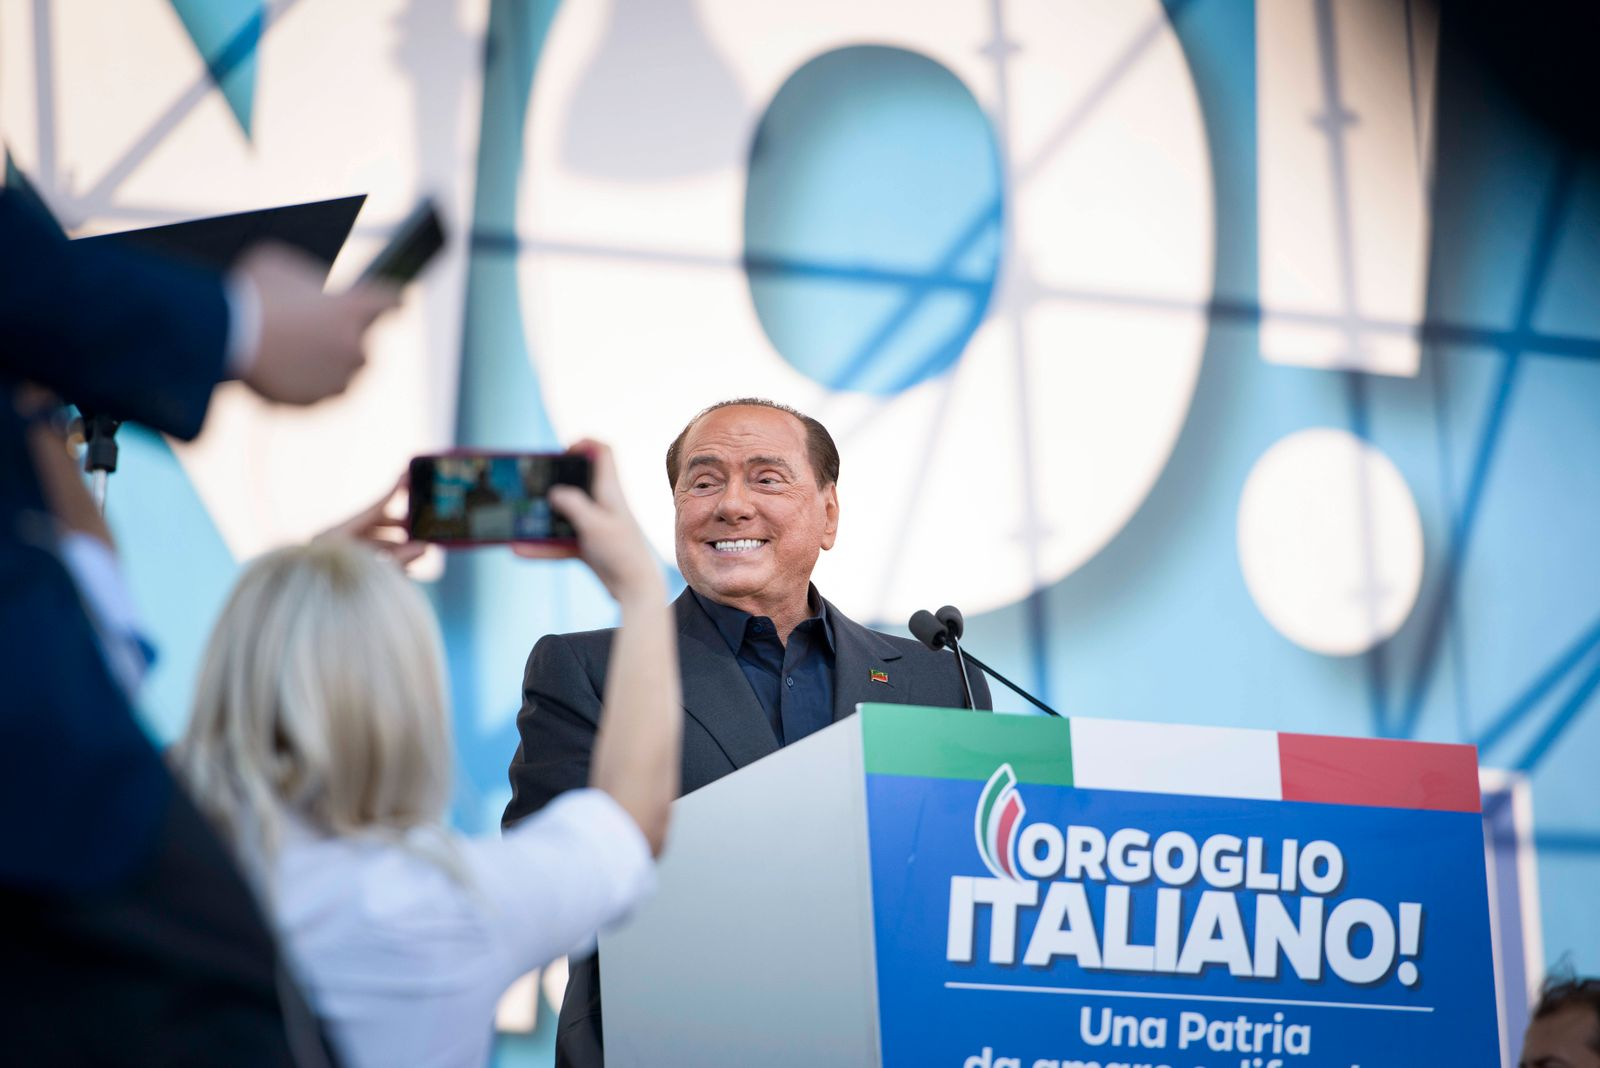 ITALY - ILLUSTRATIONS OF POLITICAL FIGURES Former Italian Prime Minister Silvio Berlusconi at a political rally in Rome